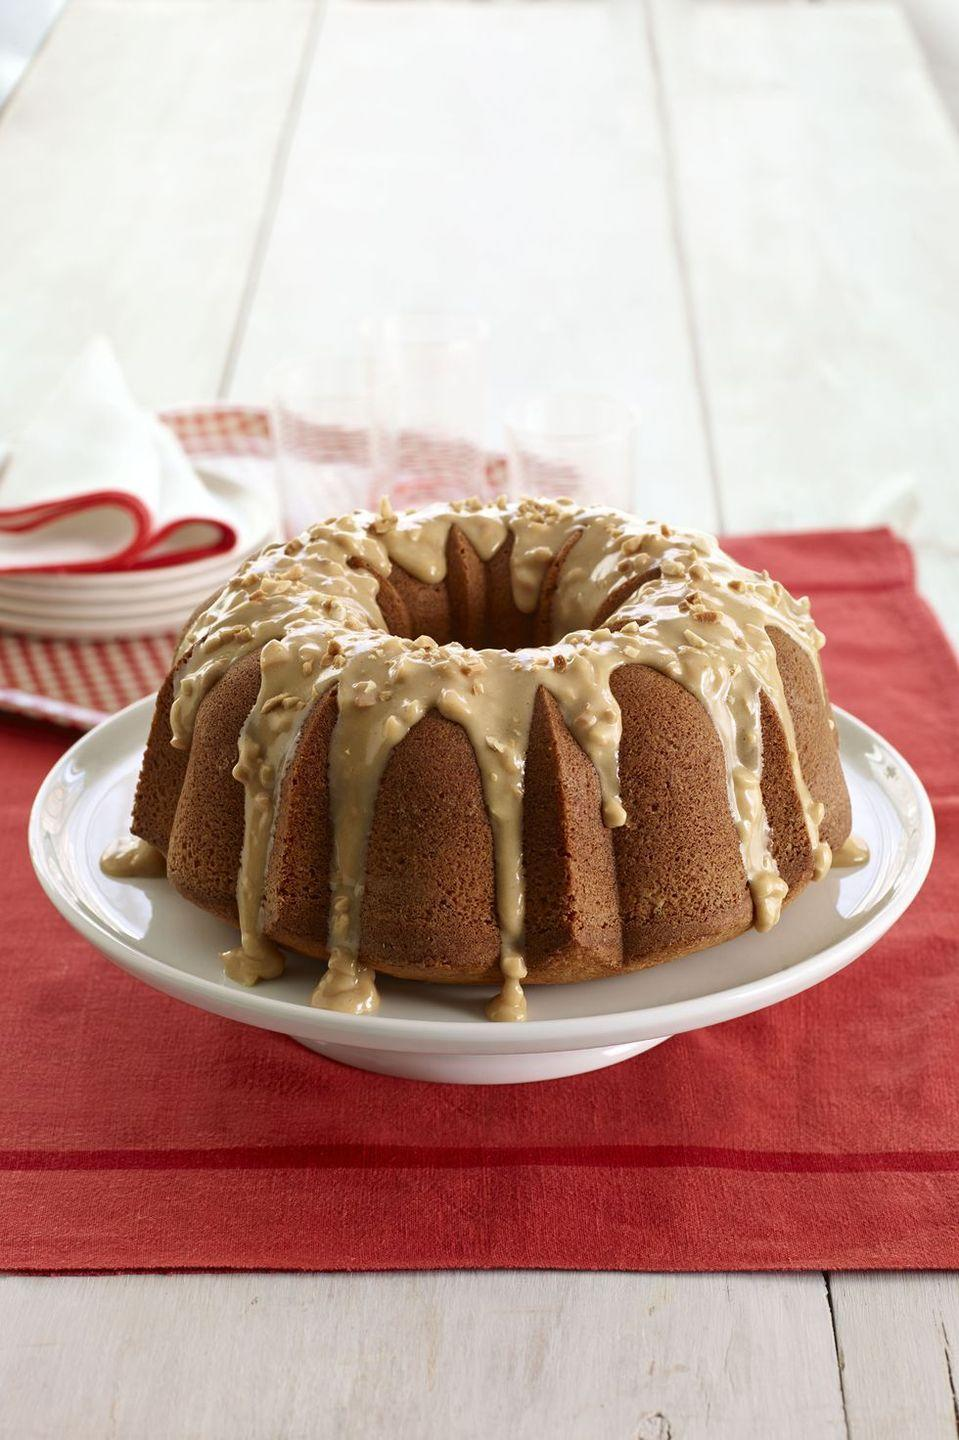 """<p>Since you two go together like PB &J, make her this nutty bundt with a creamy peanut butter drizzle. </p><p><em><a href=""""https://www.goodhousekeeping.com/food-recipes/a11577/peanut-butter-cake-recipe-wdy0814/"""" rel=""""nofollow noopener"""" target=""""_blank"""" data-ylk=""""slk:Get the recipe for Peanut Butter Cake »"""" class=""""link rapid-noclick-resp"""">Get the recipe for Peanut Butter Cake »</a></em></p>"""